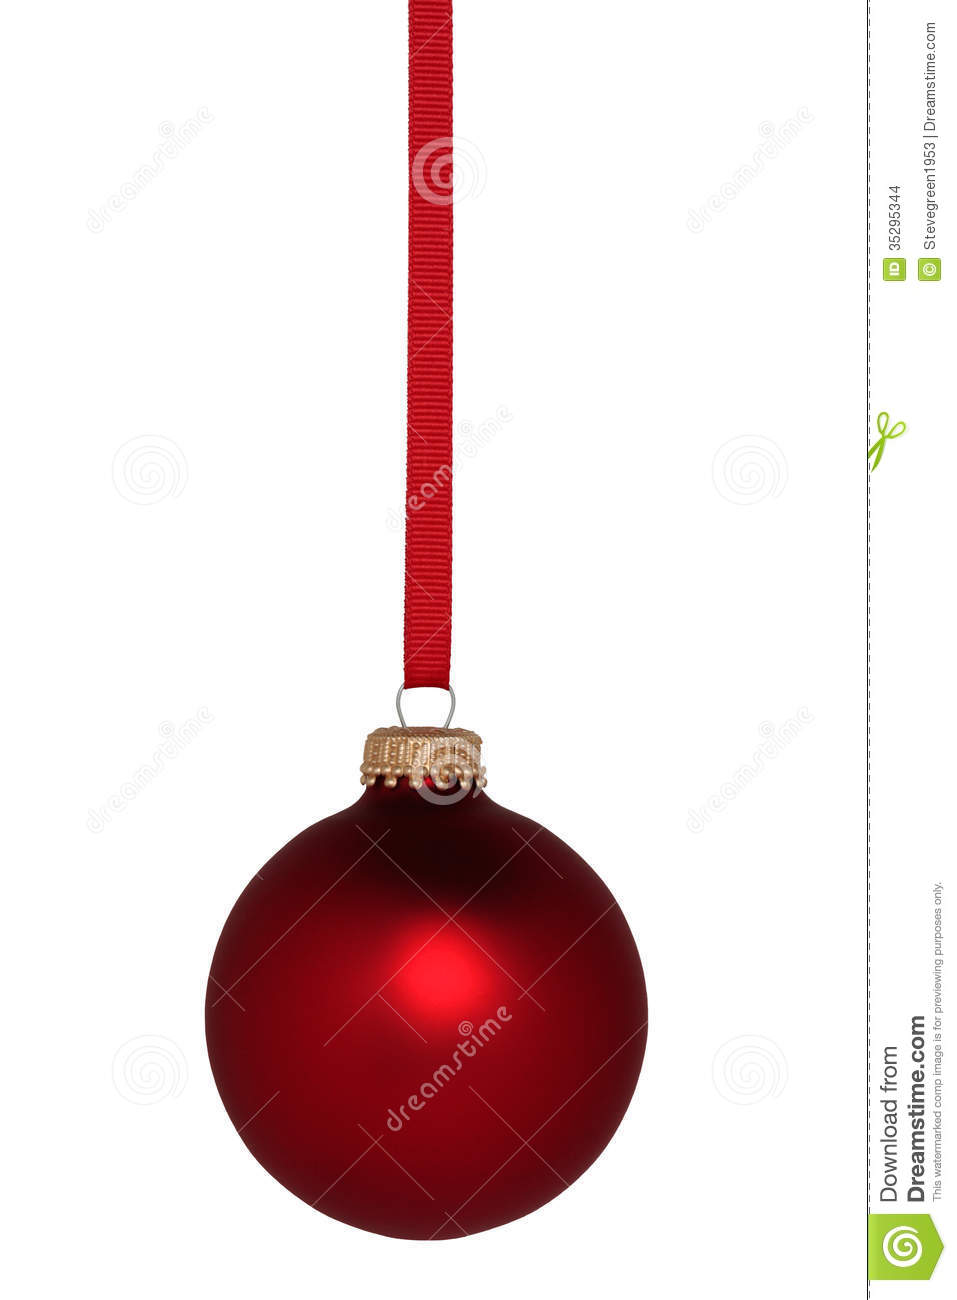 Red Ball Christmas Ornament Stock Images - Image: 35295344